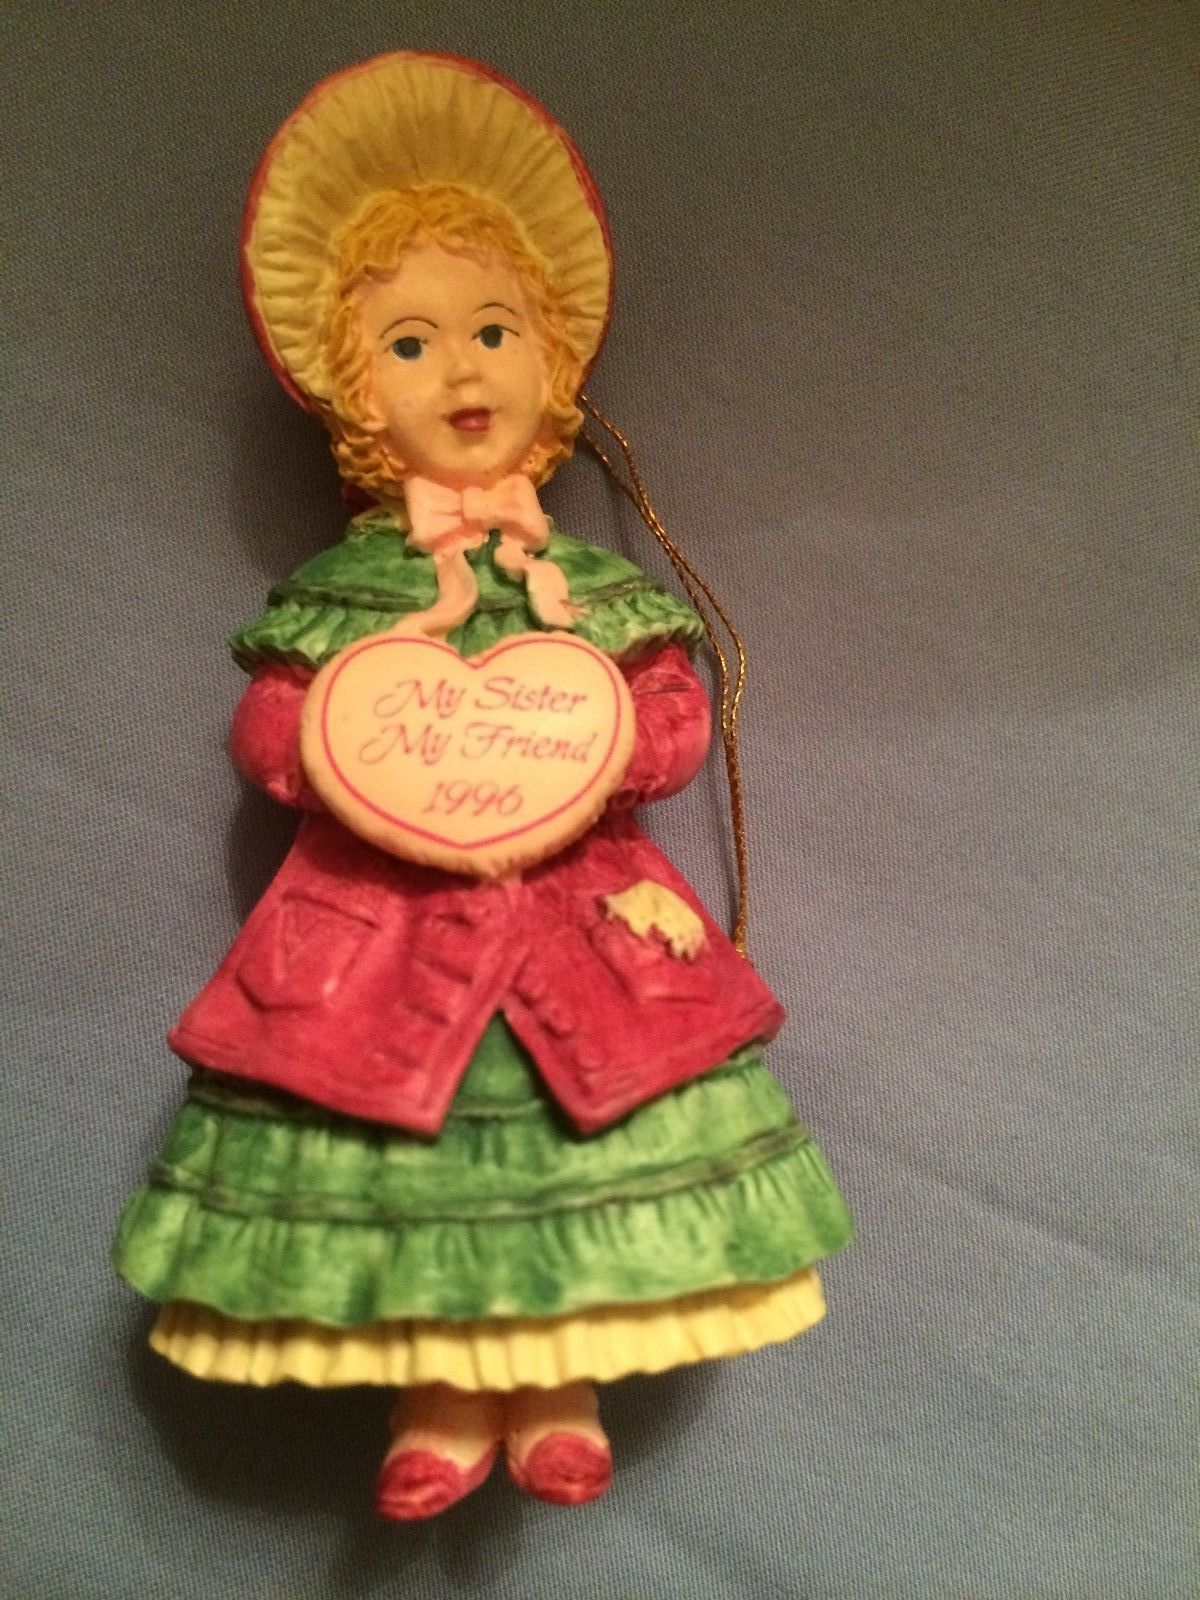 Primary image for Forget Me Not Collectable Ornament To A Dear Sister At Christmas 1996 New